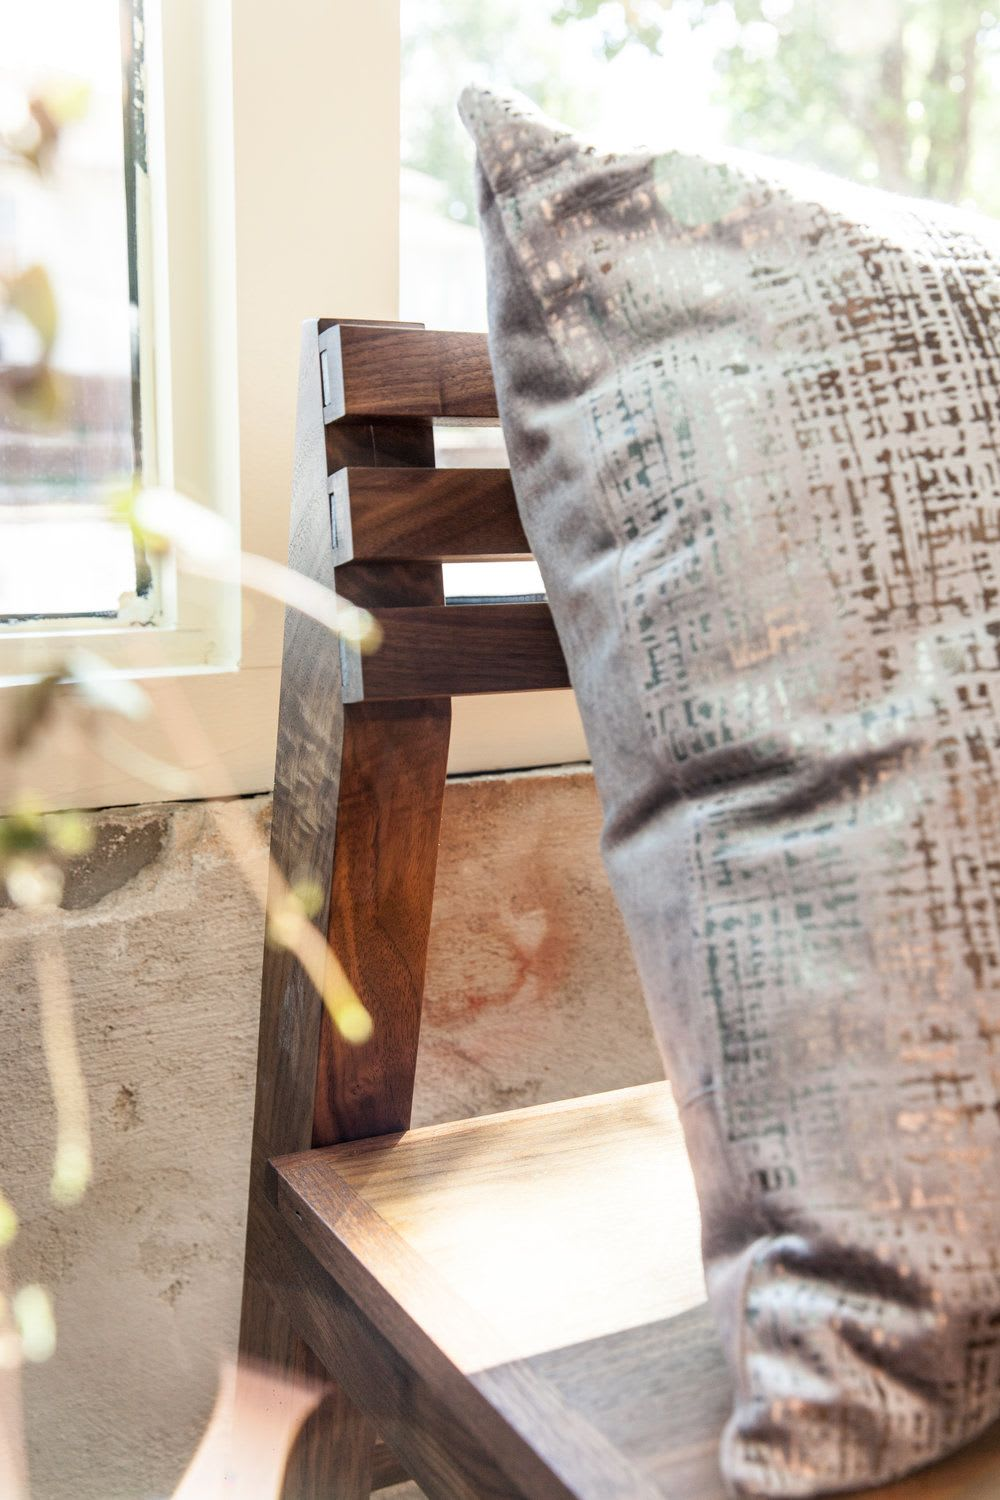 Benches & Ottomans by Art Builders Guild seen at Amethyst Coffee- Broadway, Denver - 24' Amethyst Bench